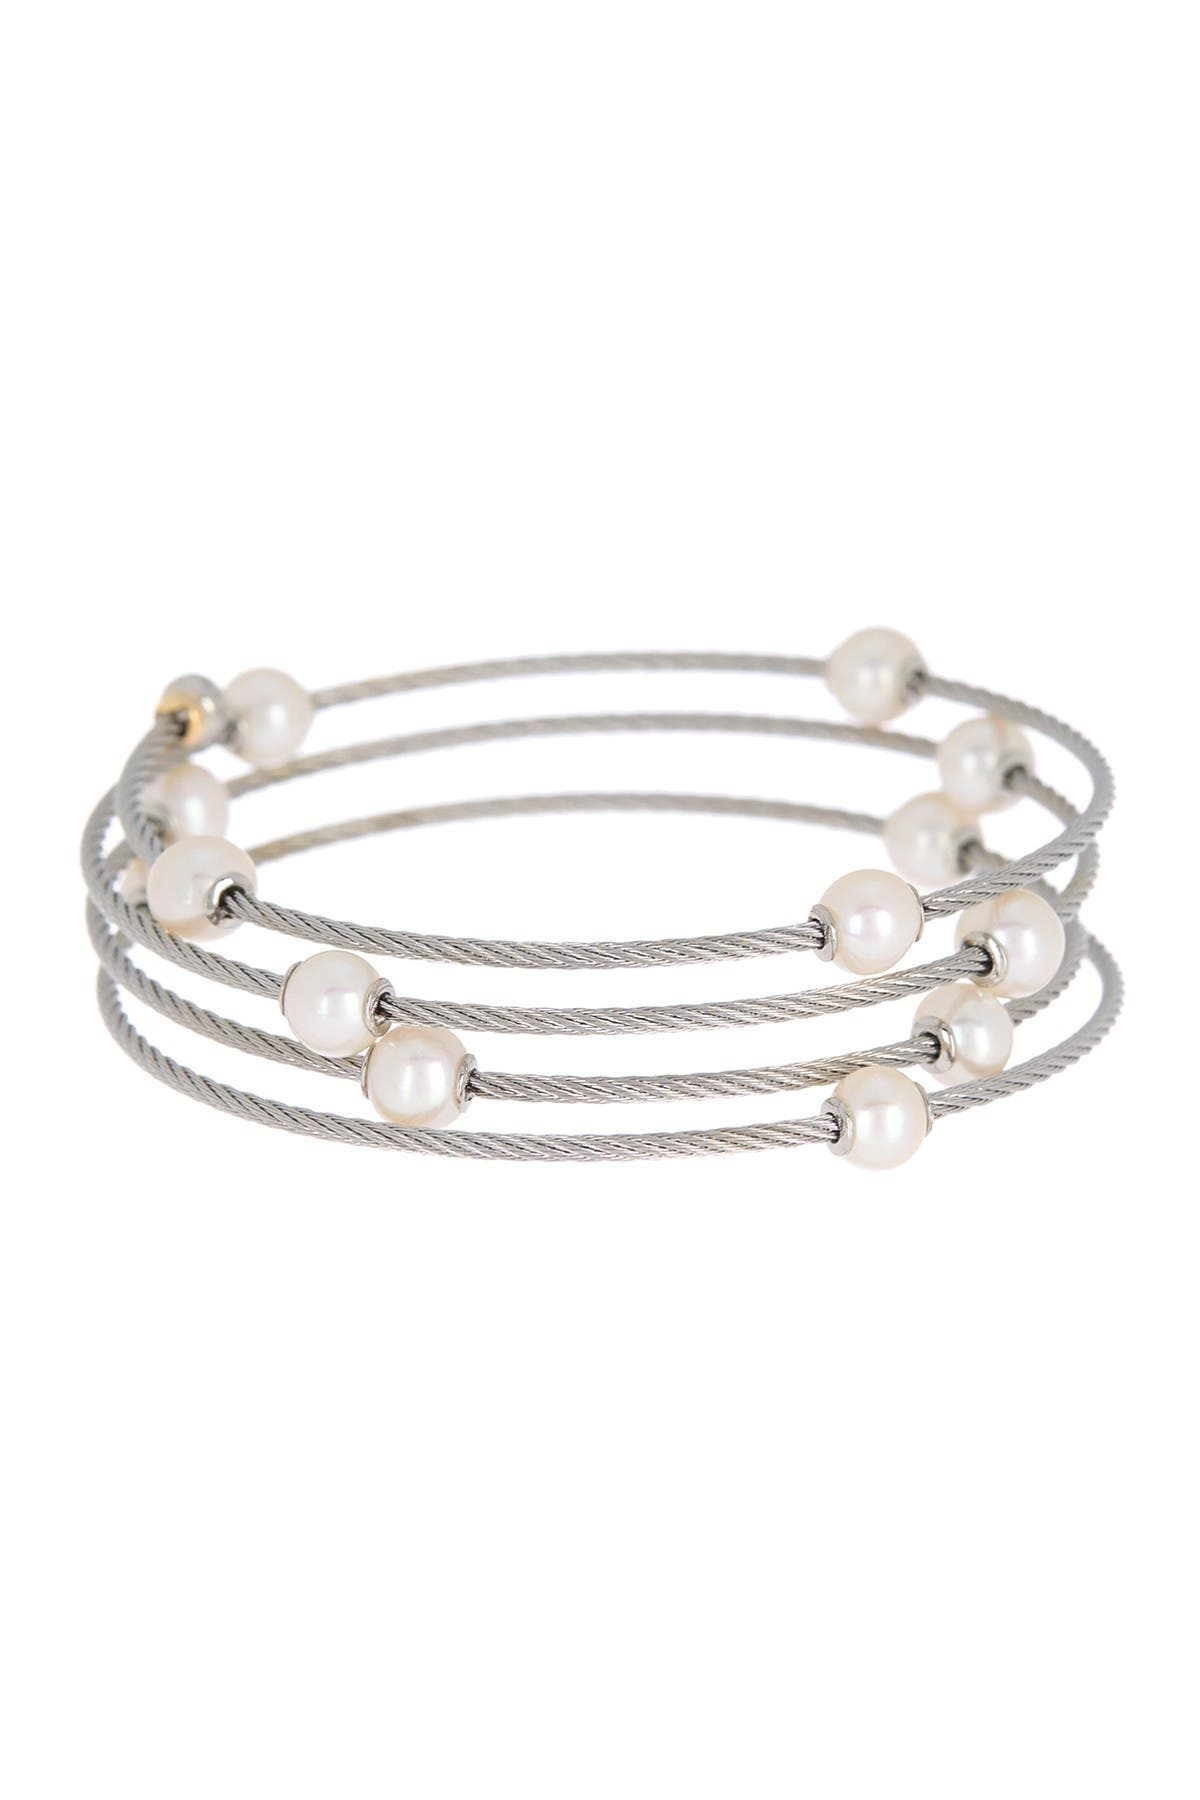 Image of ALOR 18K Yellow Gold & White Stainless Steel 6.3mm Freshwater Pearl Station Coil Wrap Bracelet